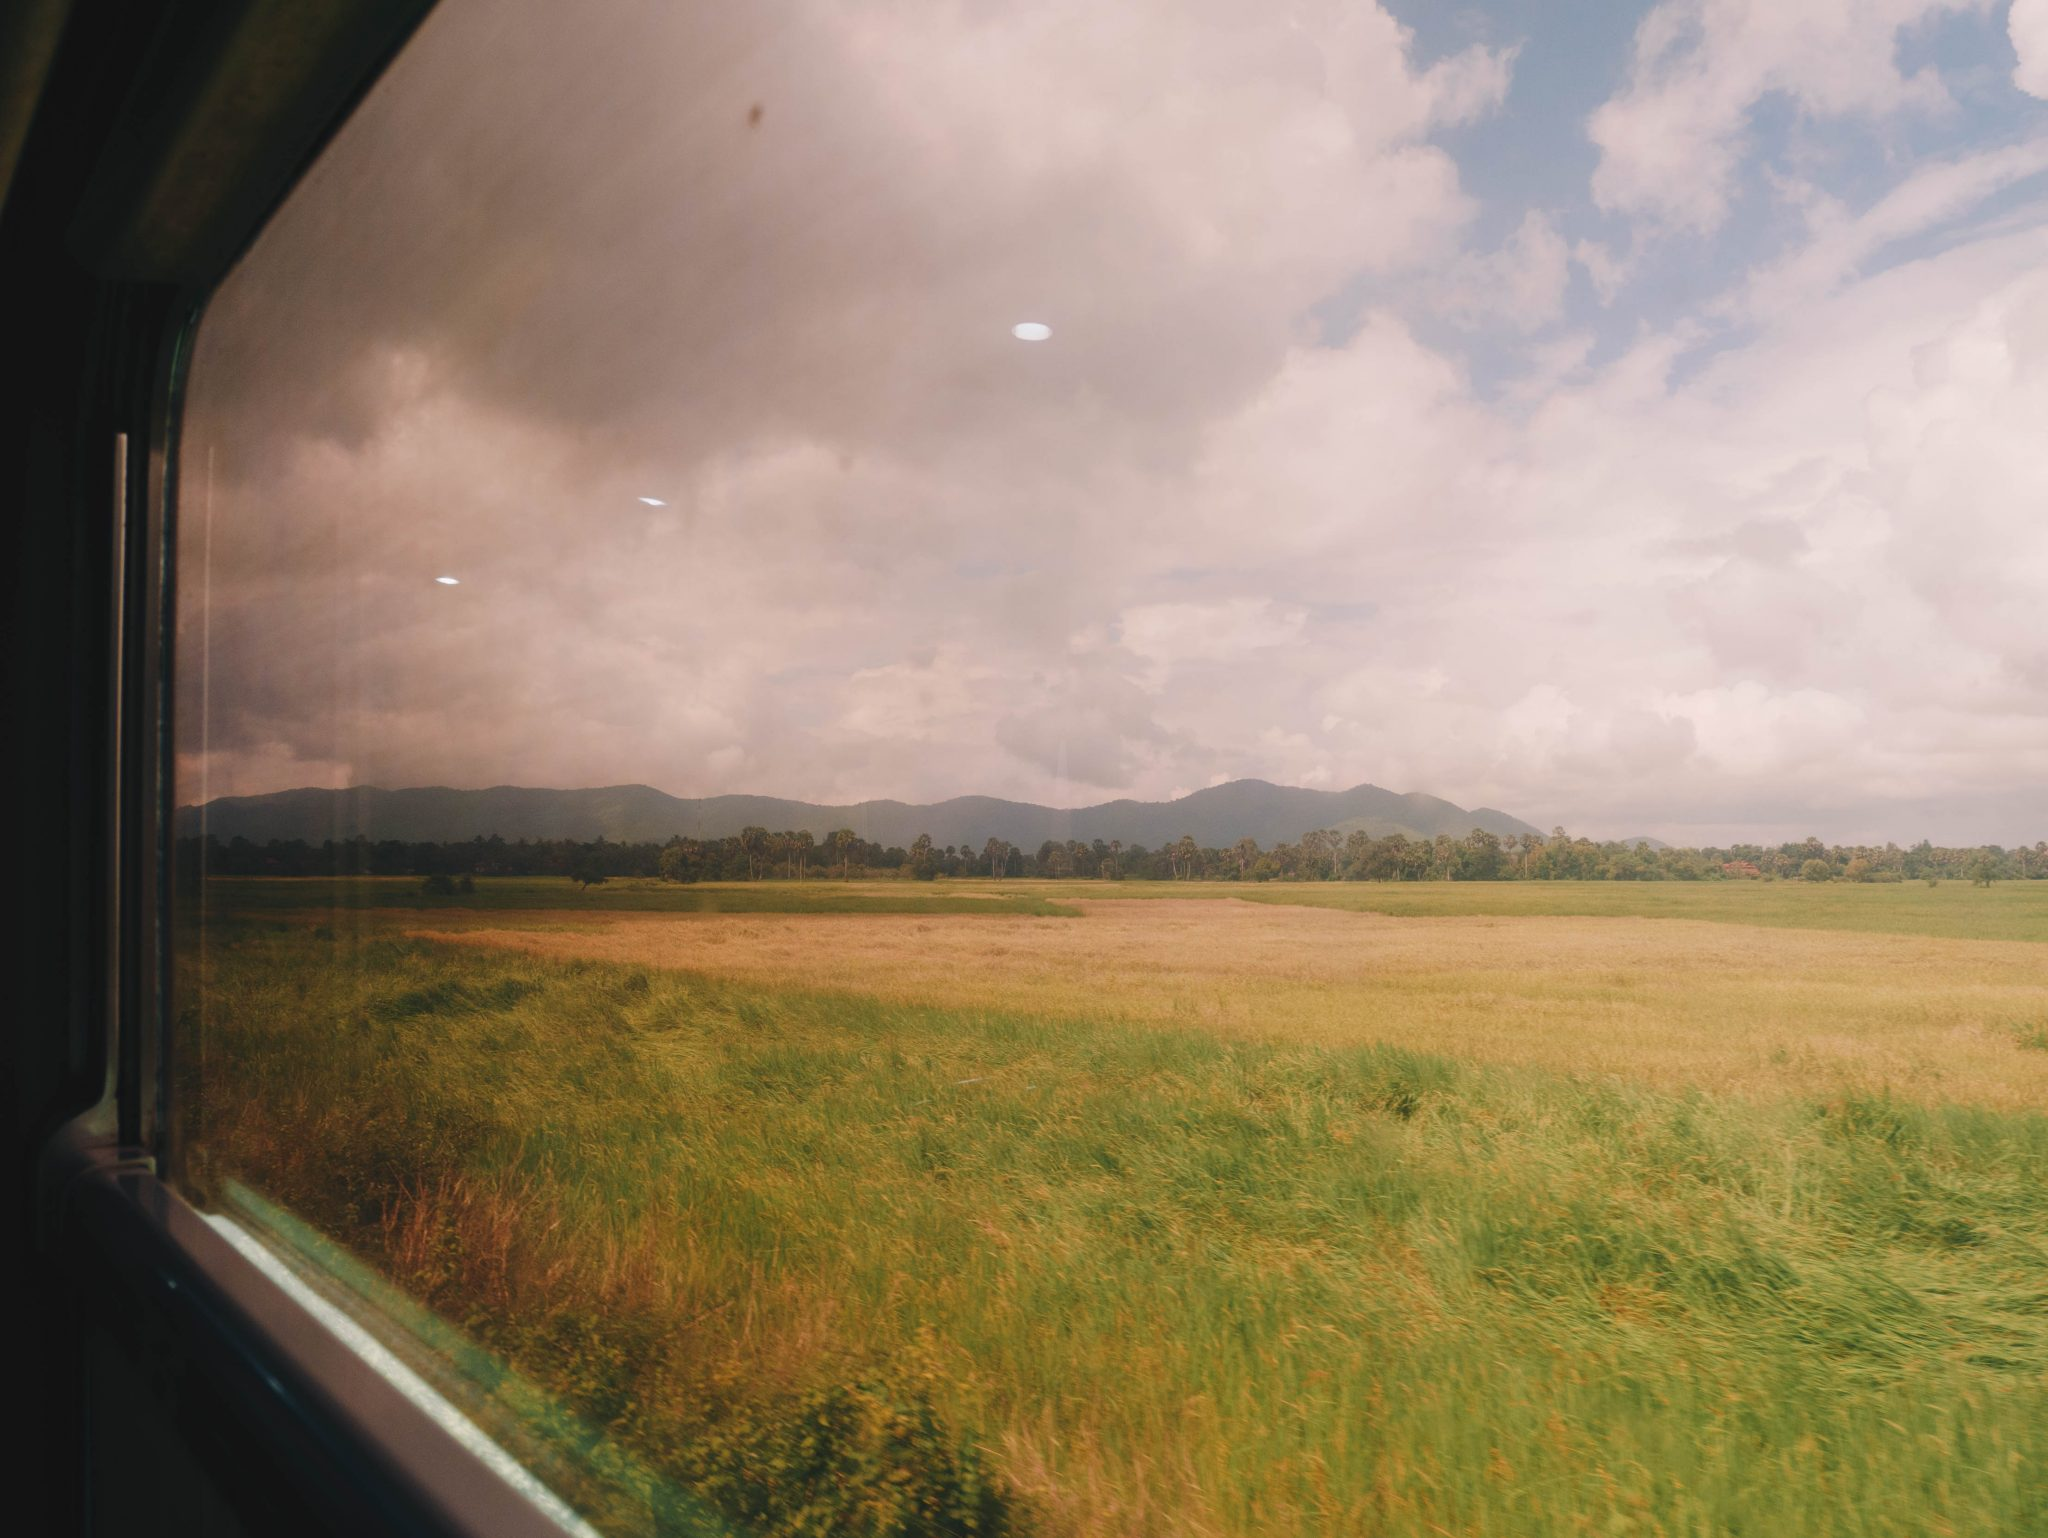 Train View from Phnom Penh to Kampot